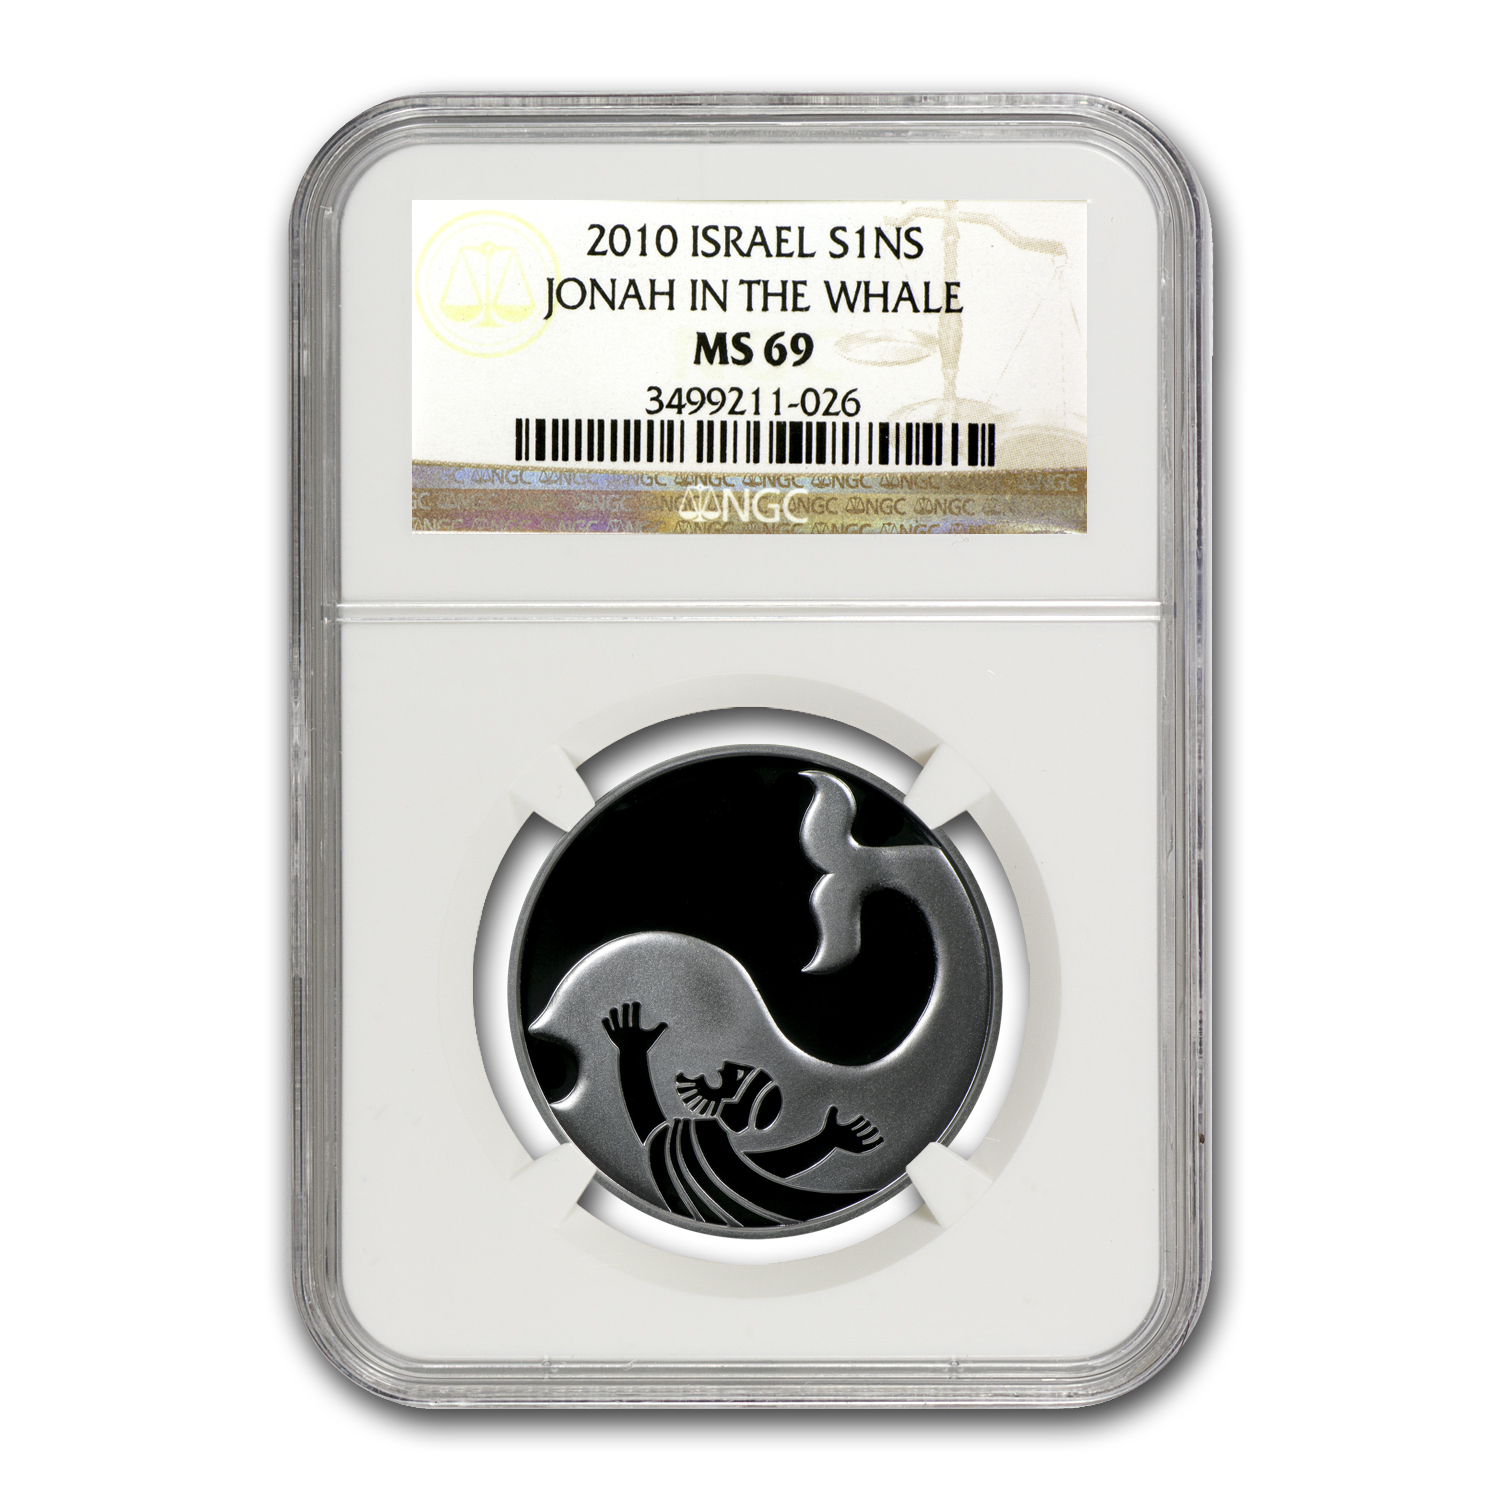 2010 Israel Jonah in the Whale Silver 1 NIS MS-69 NGC